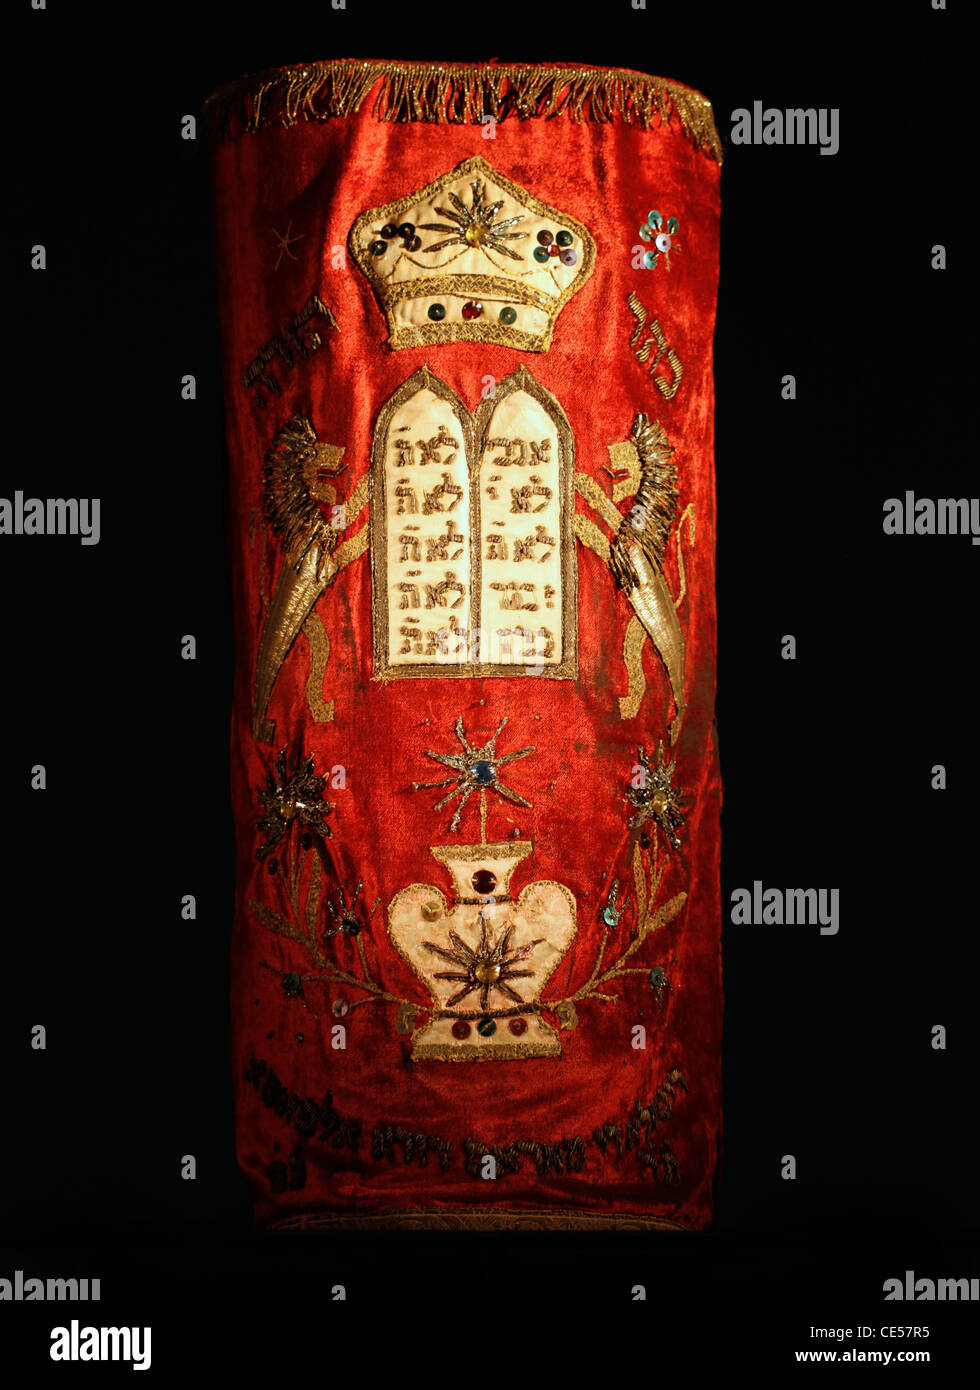 A richly embroidered mantle covers the sacred Torah Jewish scrolls - Stock Image